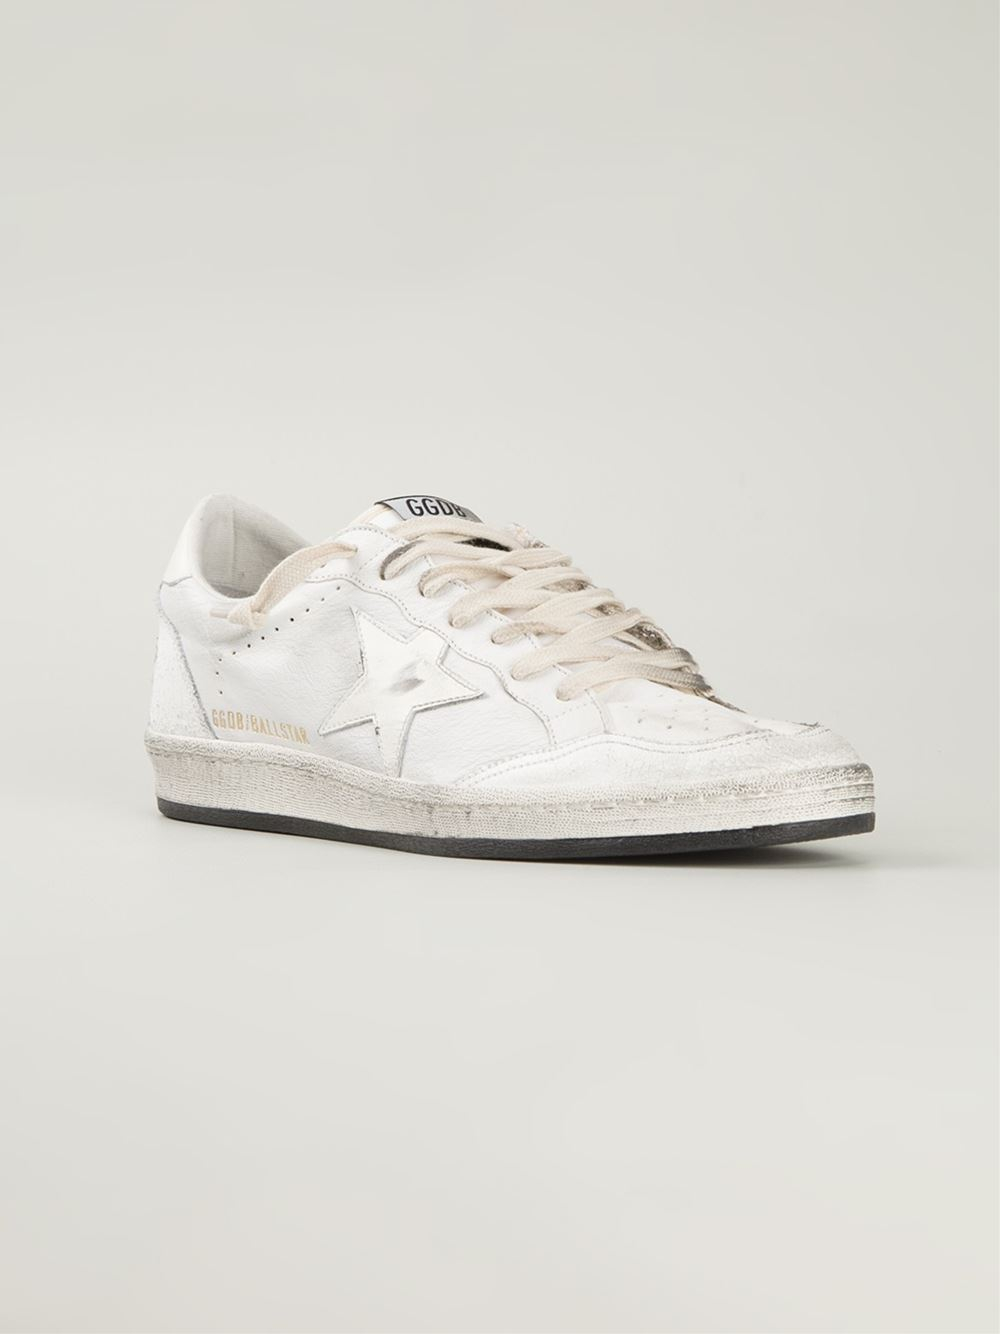 bc2044fda1448 Lyst - Golden Goose Deluxe Brand  Ball Star  Sneakers in White for Men